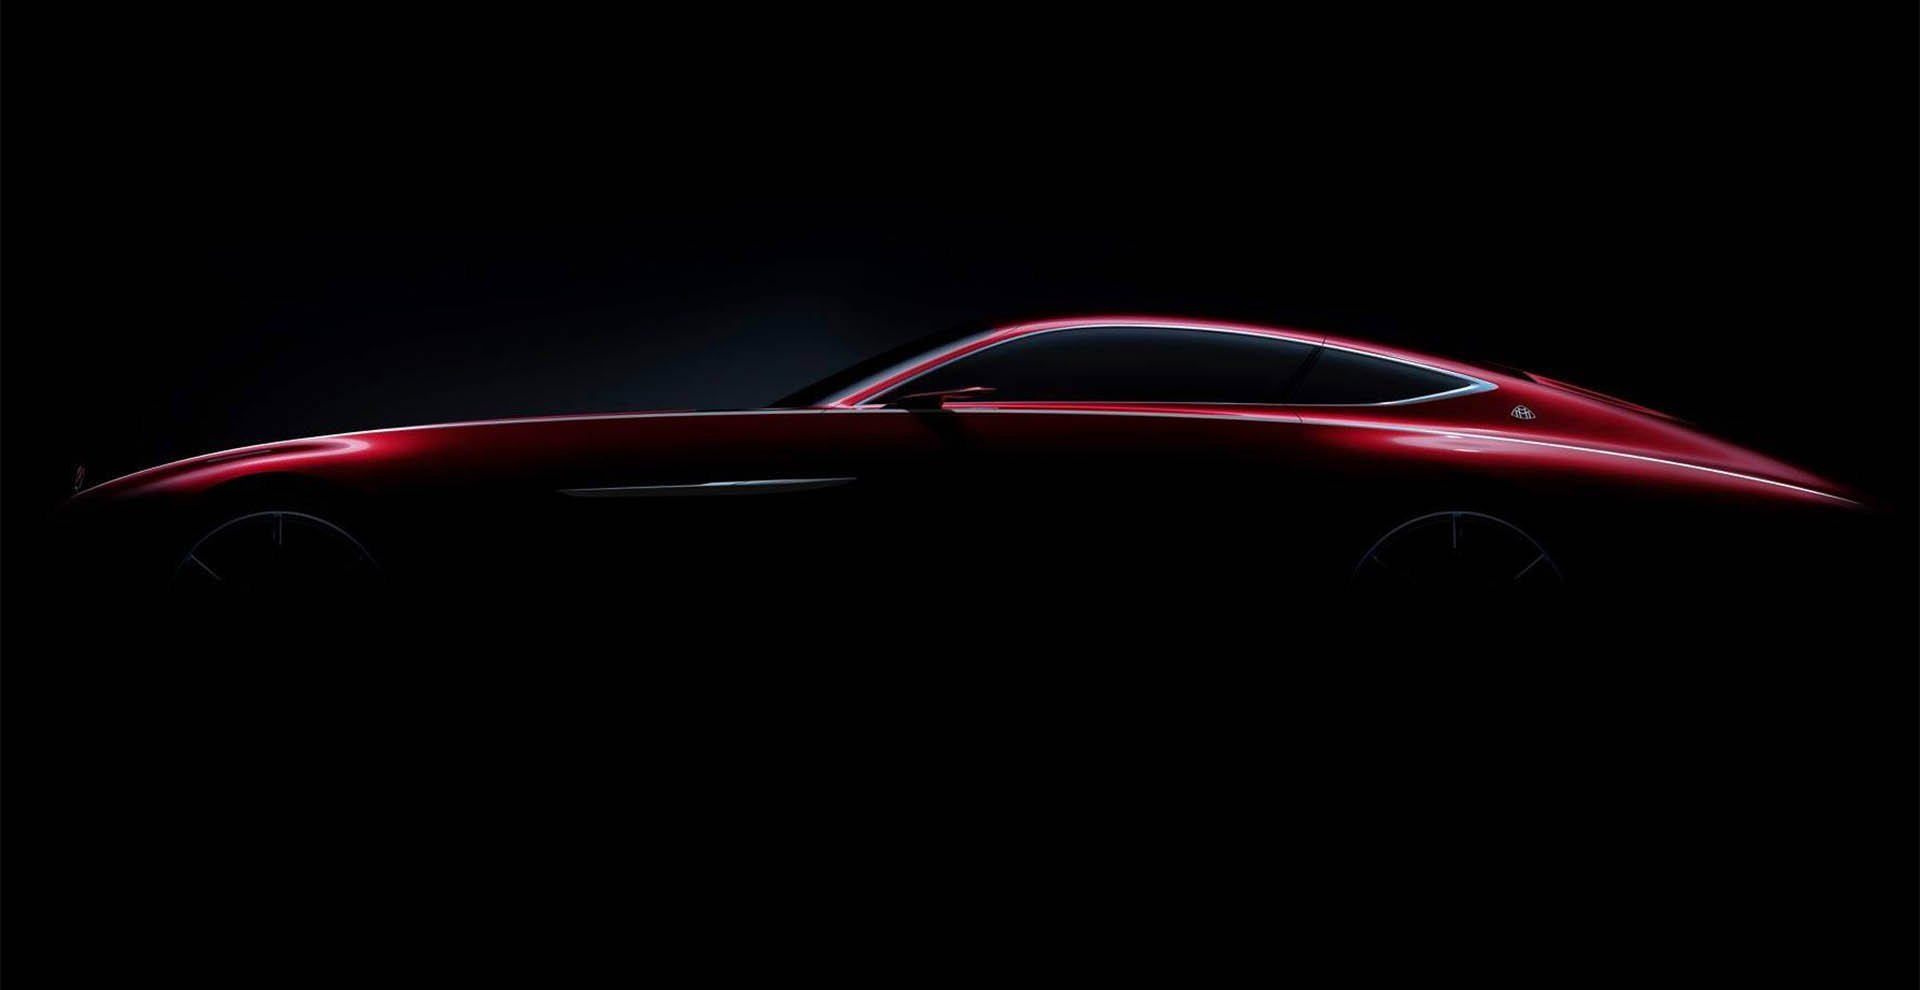 Mercedes Maybach Coupe Concept is Nearly 20-feet Long